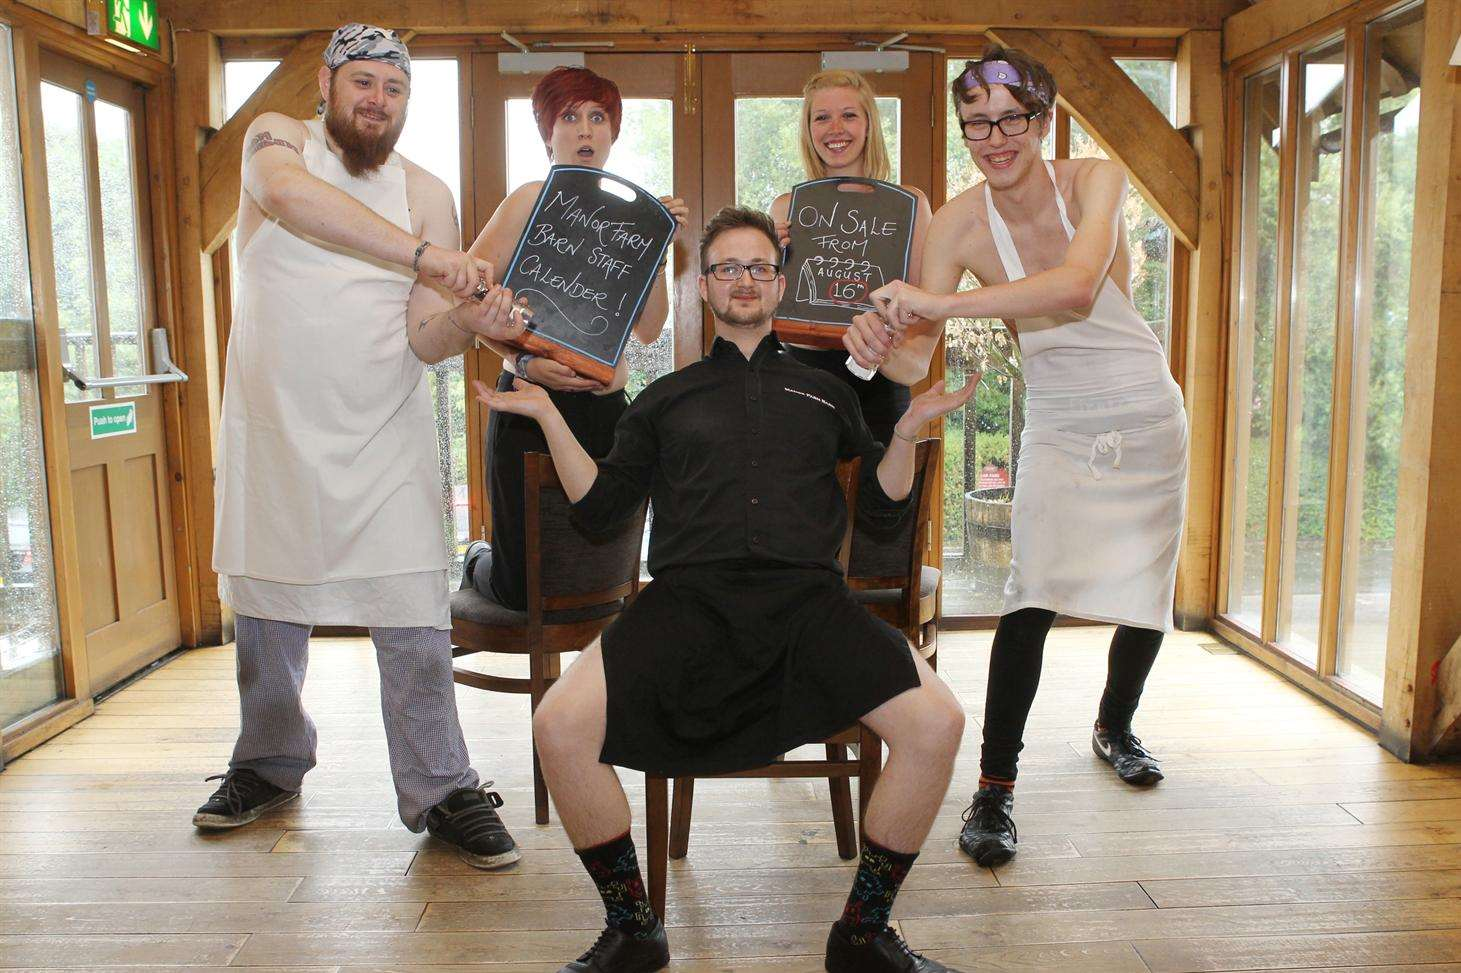 Staff at the Manor Farm Barn Pub with their version of the naked chef